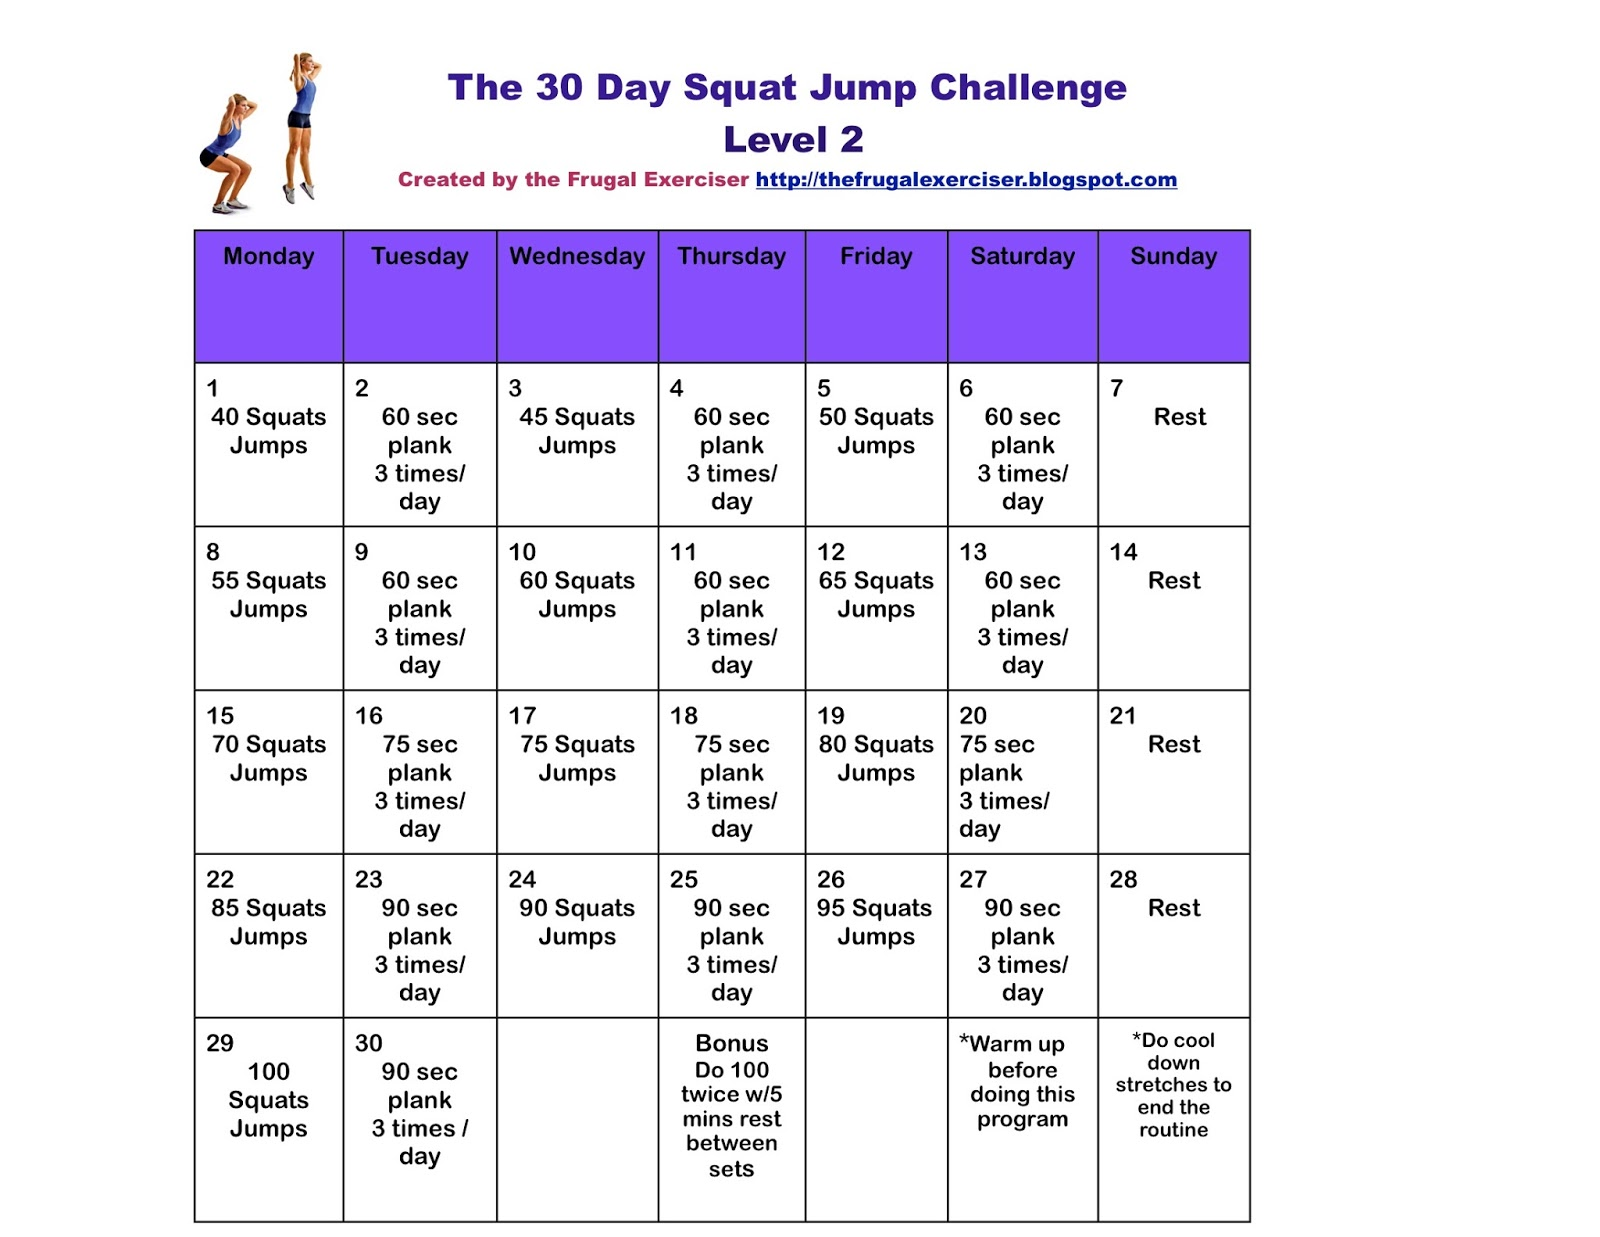 The 30 Day Squat Jump Challenge The Frugal Exerciser